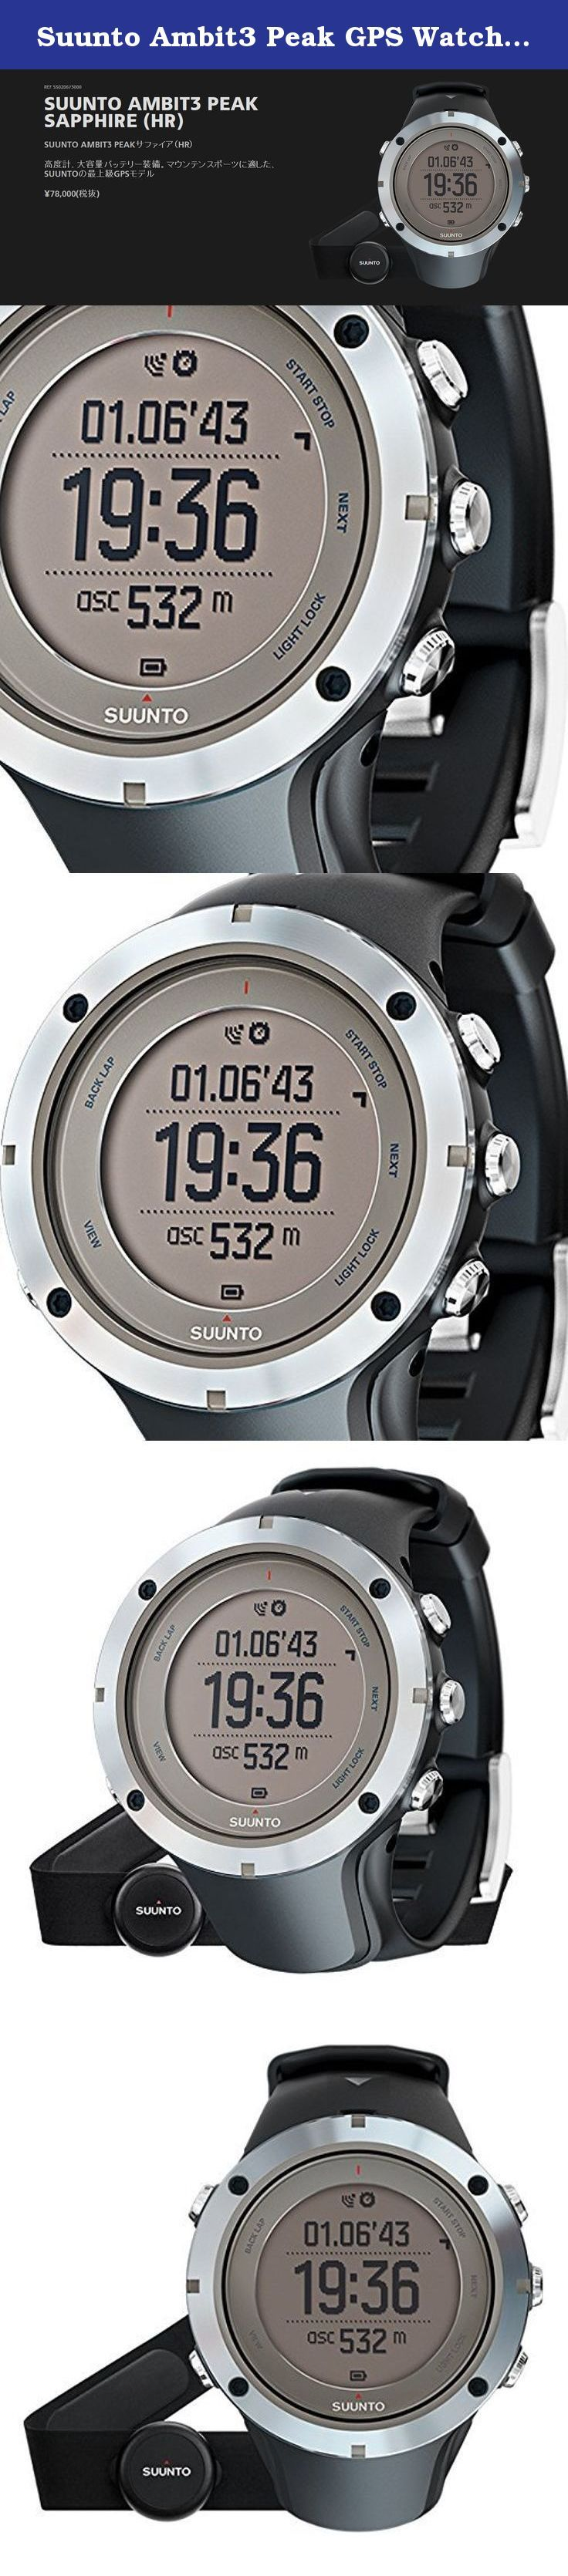 Suunto Ambit3 Peak GPS Watch with Heart Rate - Sapphire Crystal (Sapphire). The Ambit3 Peak from Suunto is a multifunctional sports watch with heart rate monitoring as well as weather and GPS functions. The sapphire glass makes the watch ultra scratch-resistant, while Bluetooth compatibility ensures wireless connectivity to your iPhone or iPad. The watch is compatible with the free Suunto Movescount App thanks to which you can customise it on the go, take photos showing your current speed...